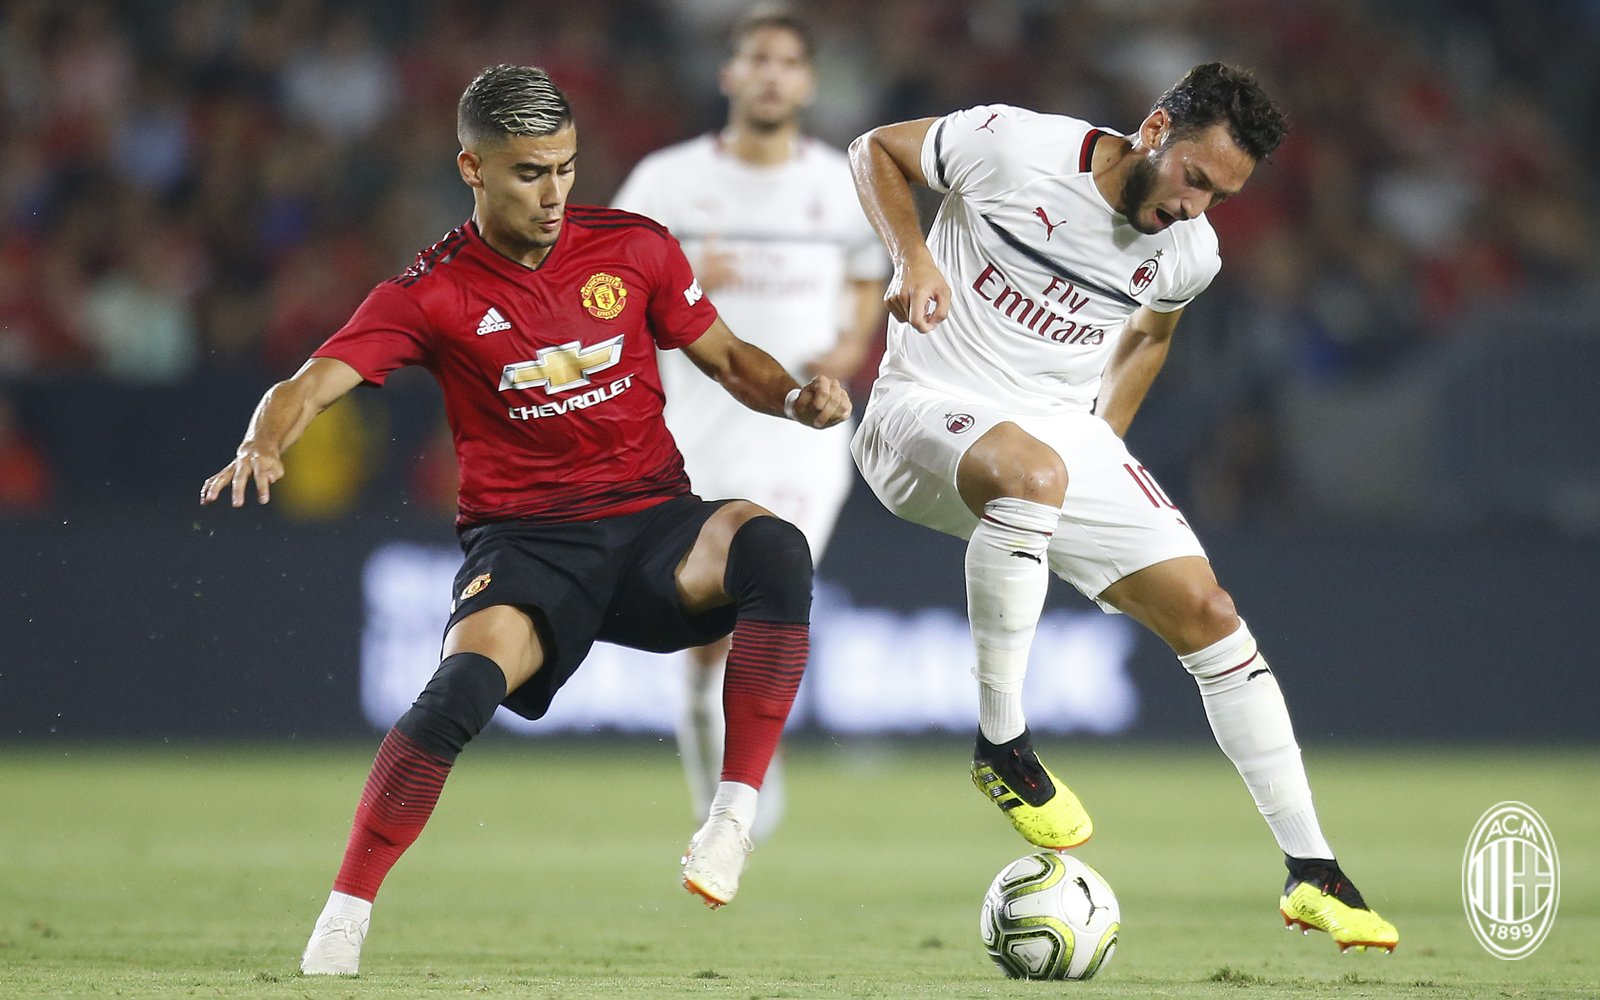 DIRETTA STREAMING - ICC Manchester United vs Milan - LIVE ...